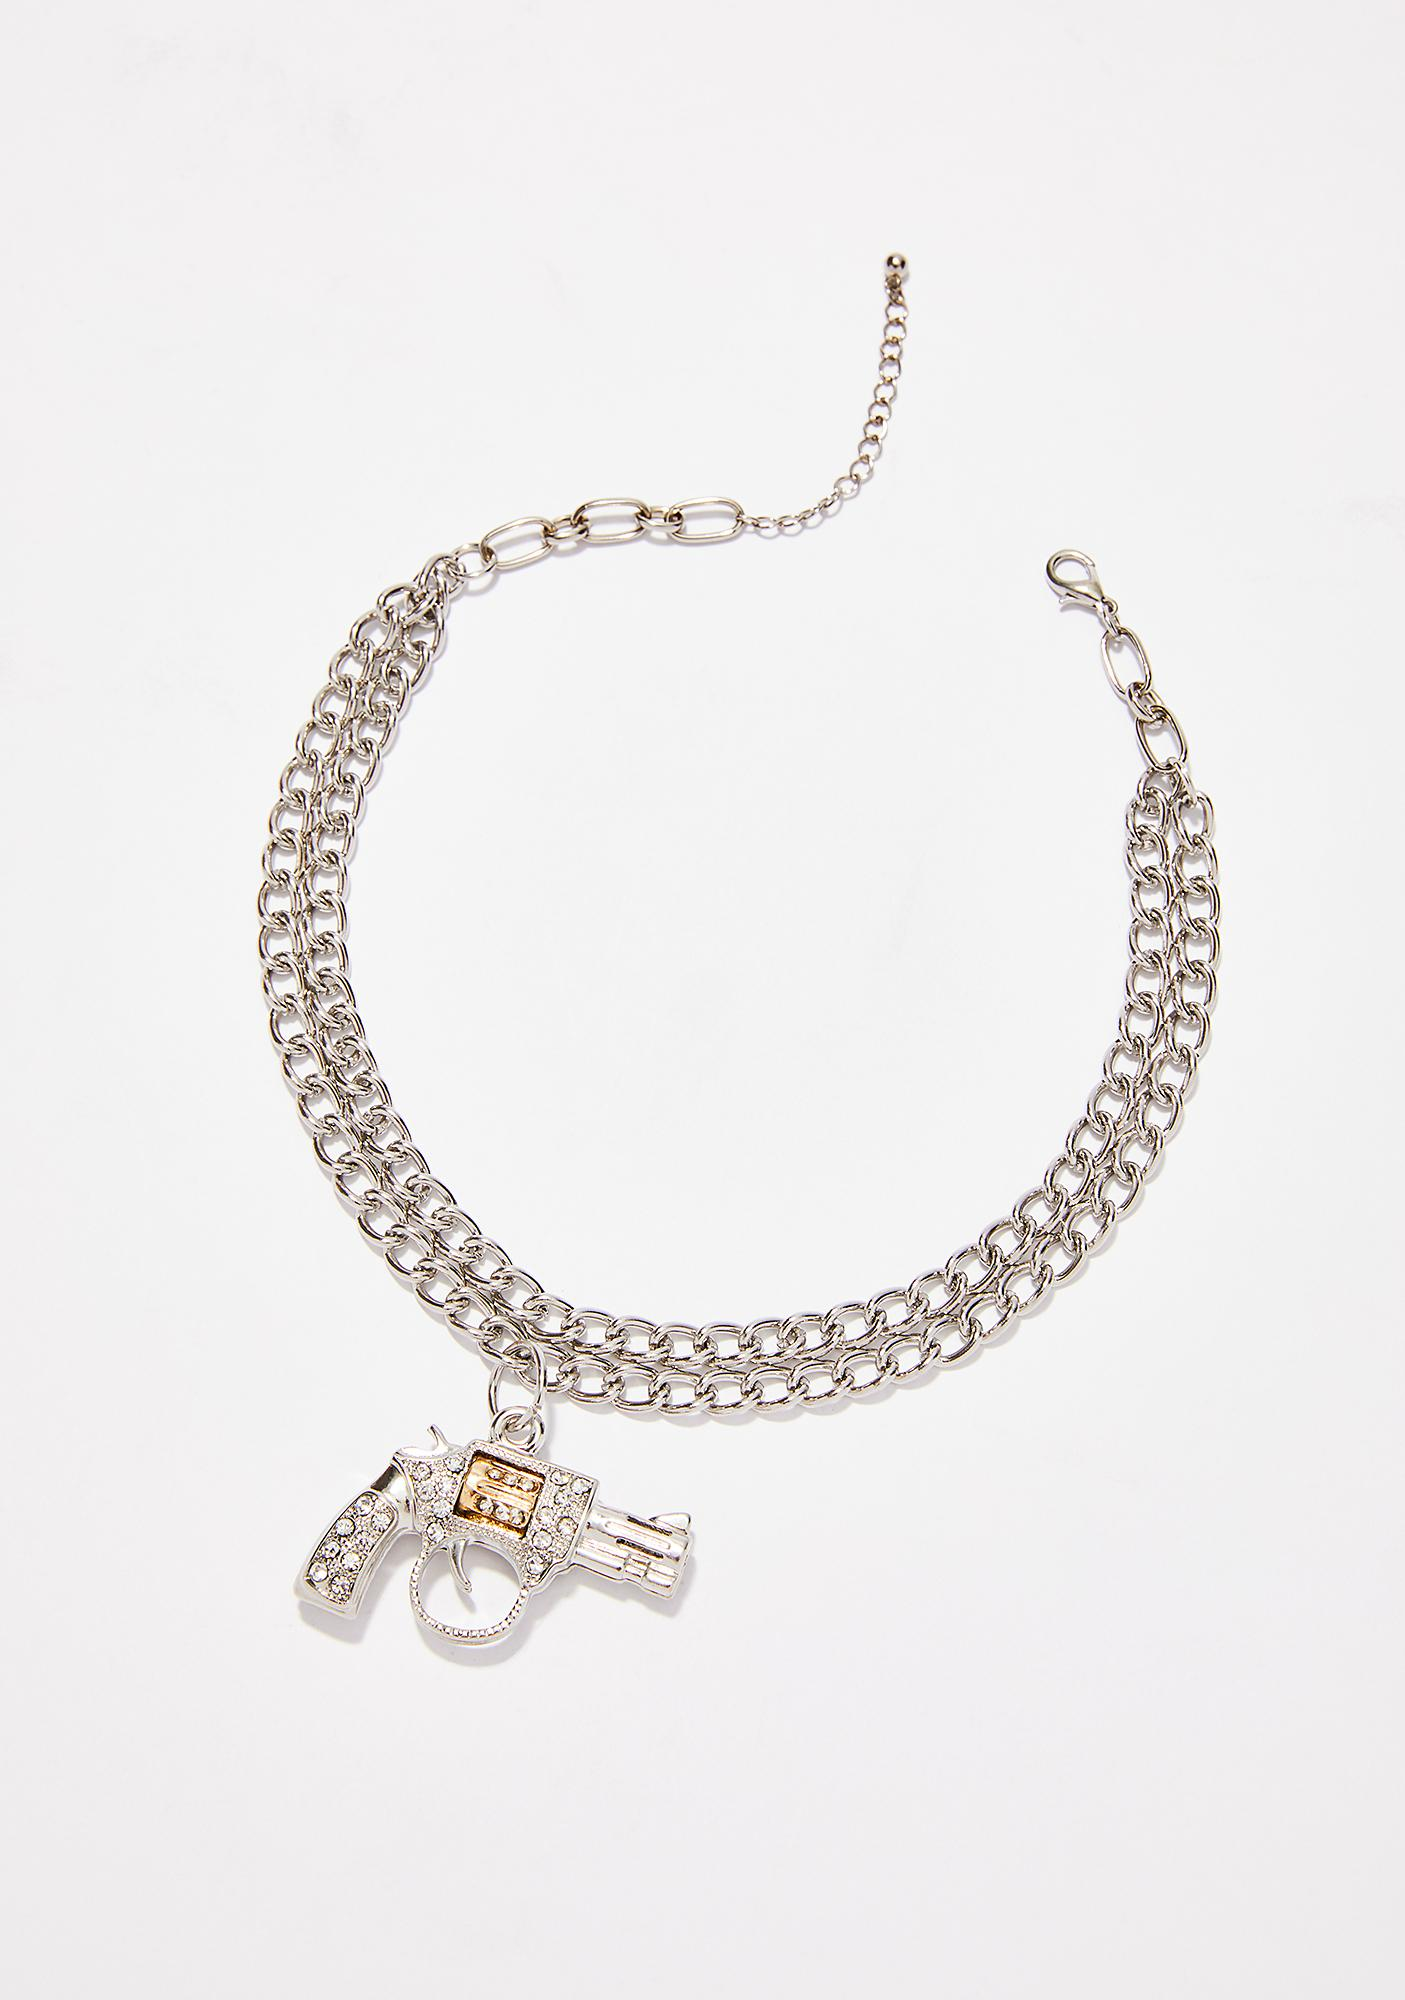 Take Aim Chain Choker